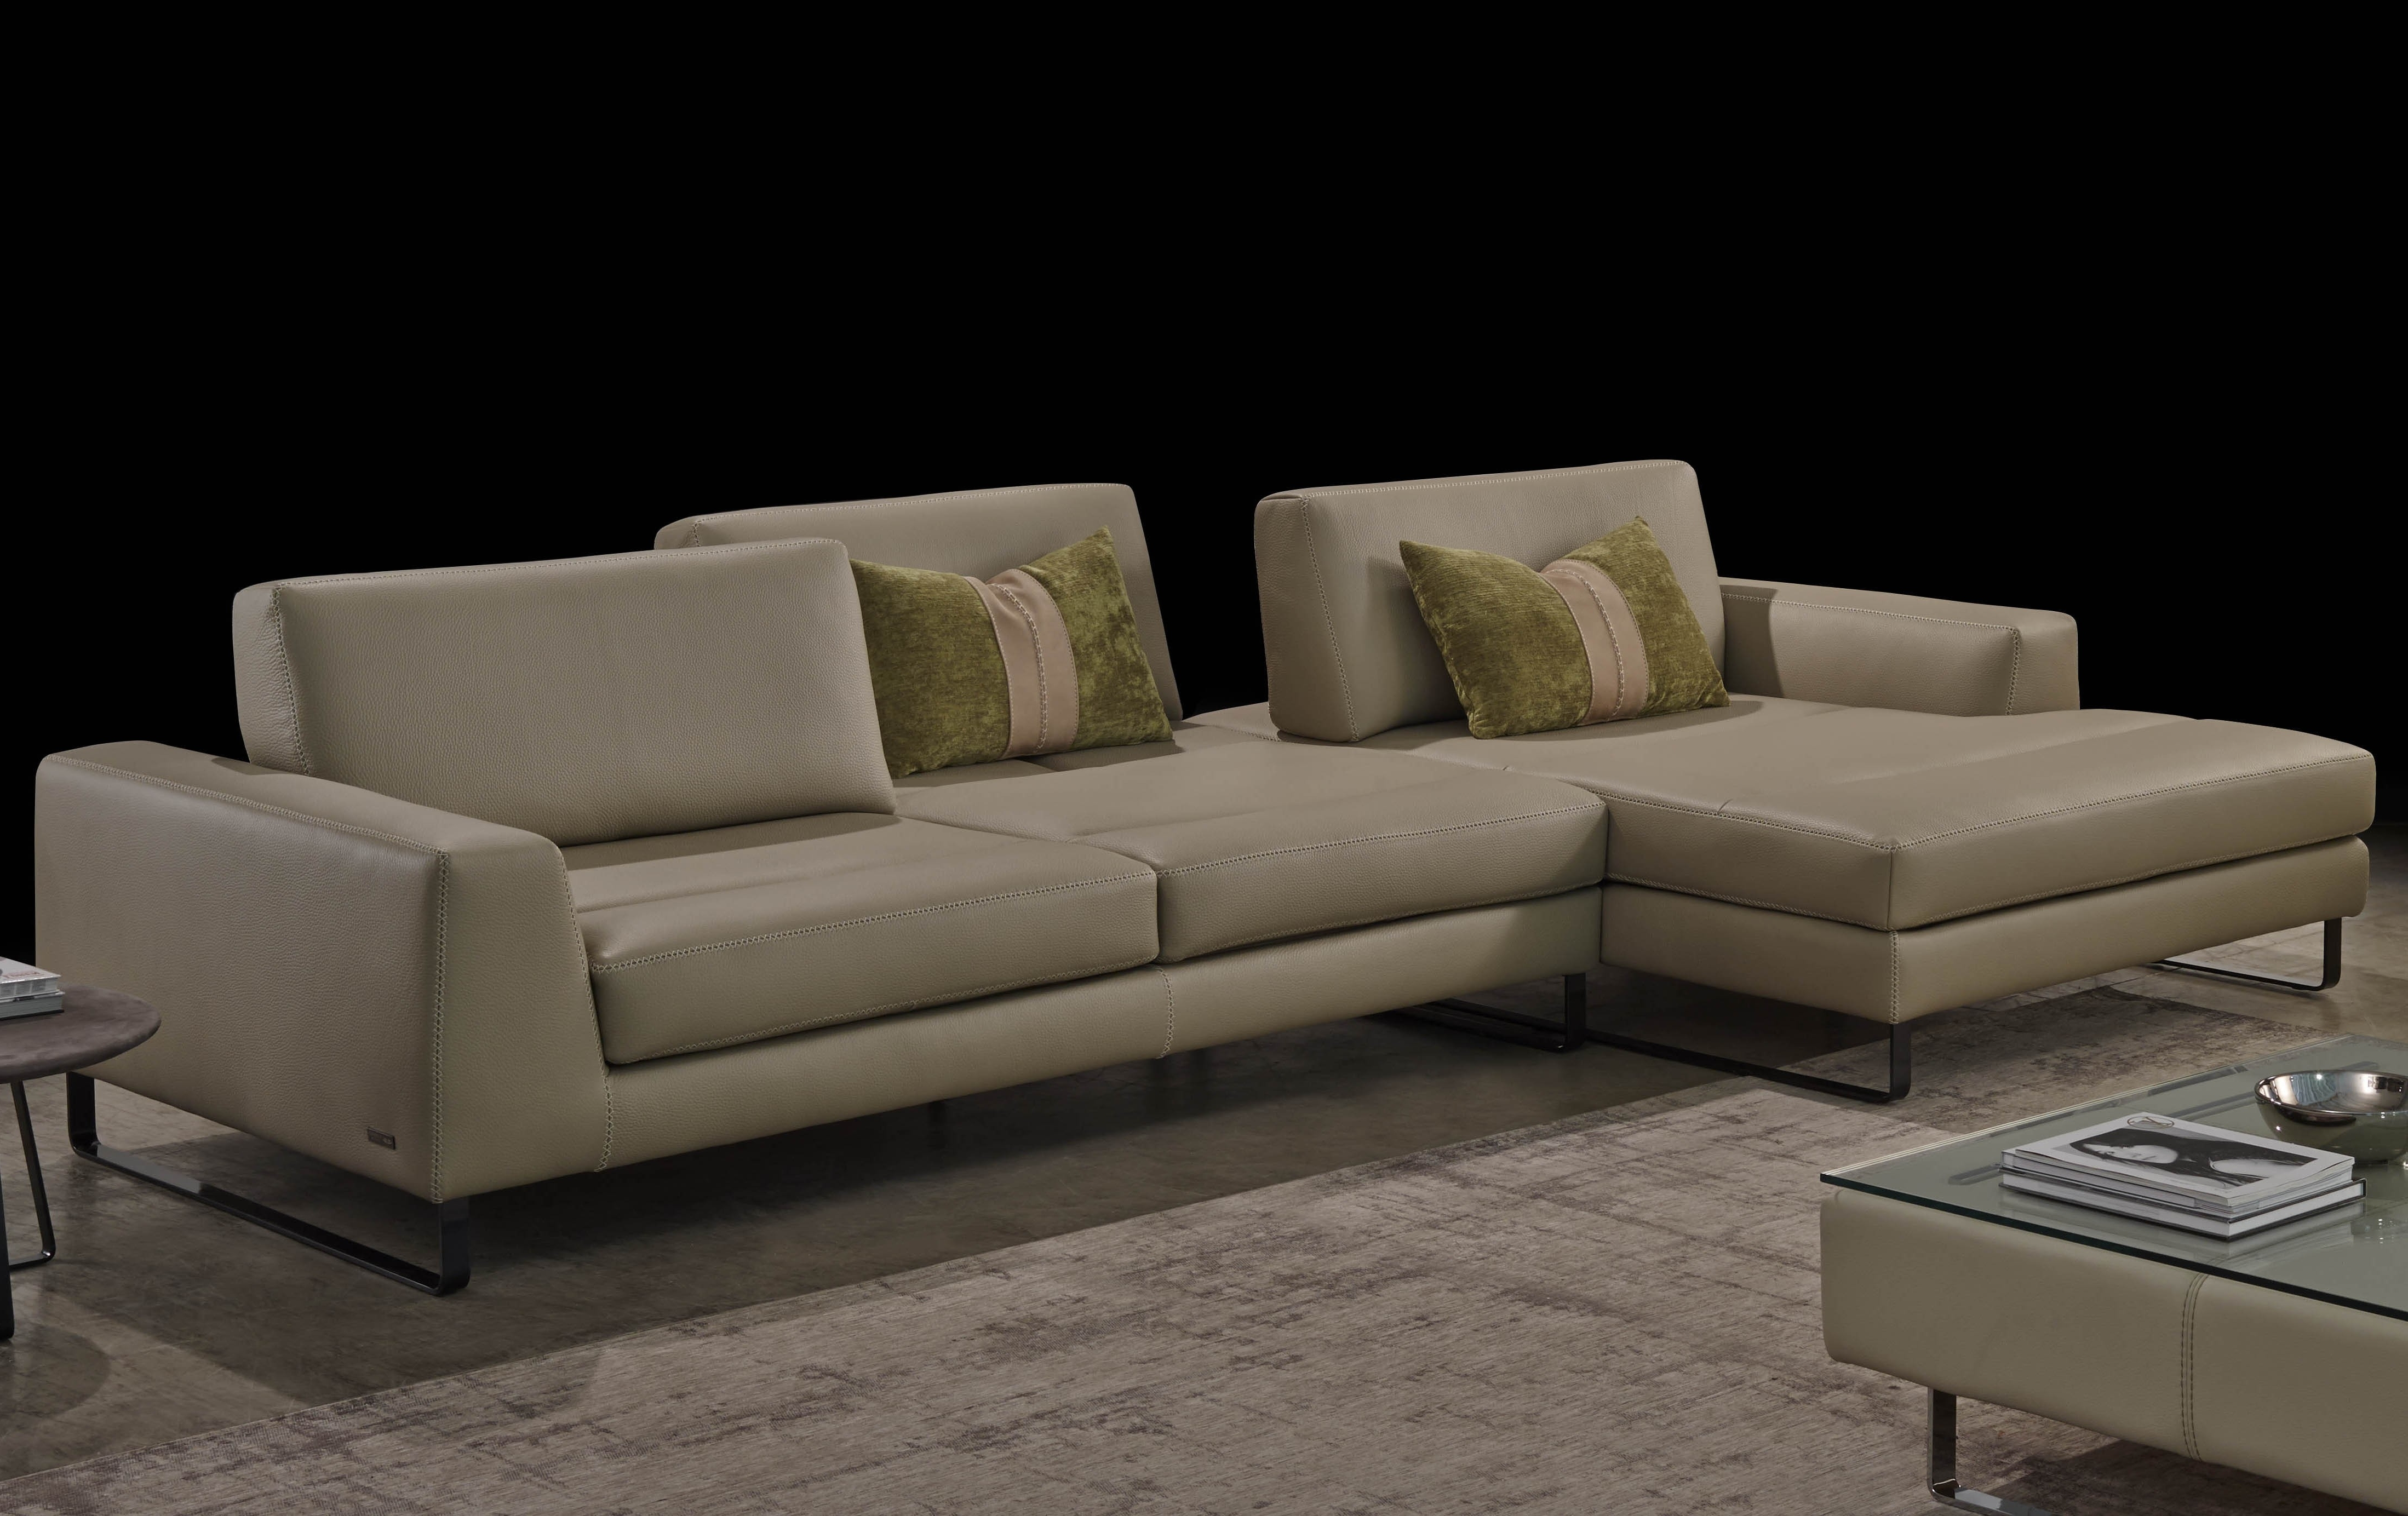 urban sofa gallery rattan mini corner cover view of nashua nh sectional sofas showing 14 20 photos widely used gamma international italy italmoda furniture store for